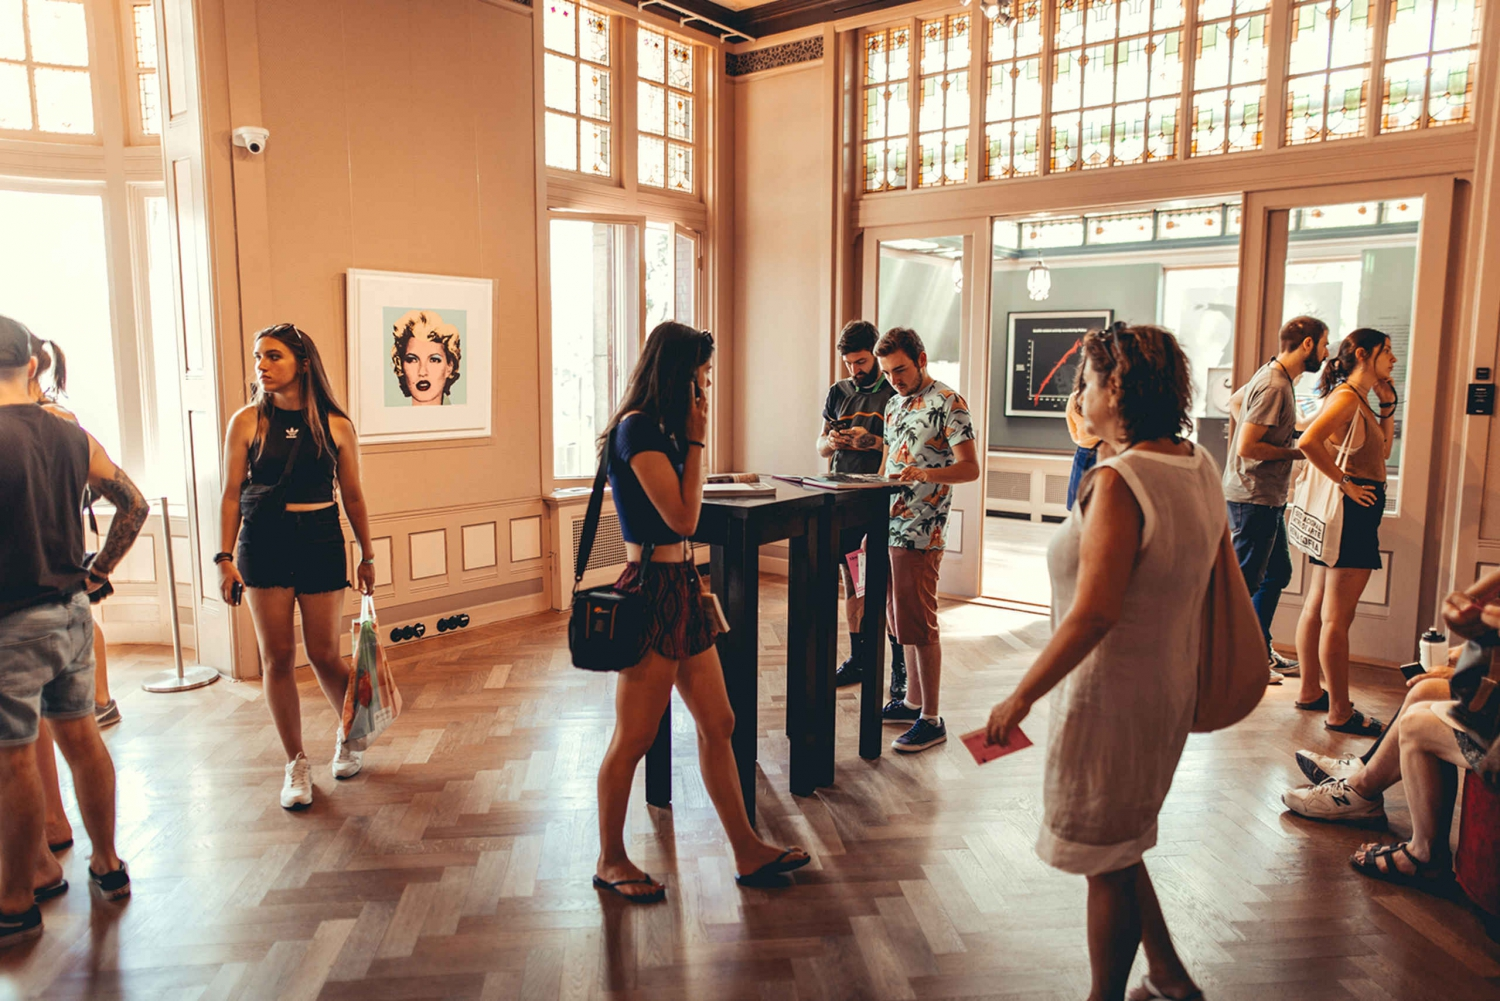 Combo Ticket: Amsterdam City Walking Tour and Moco Museum